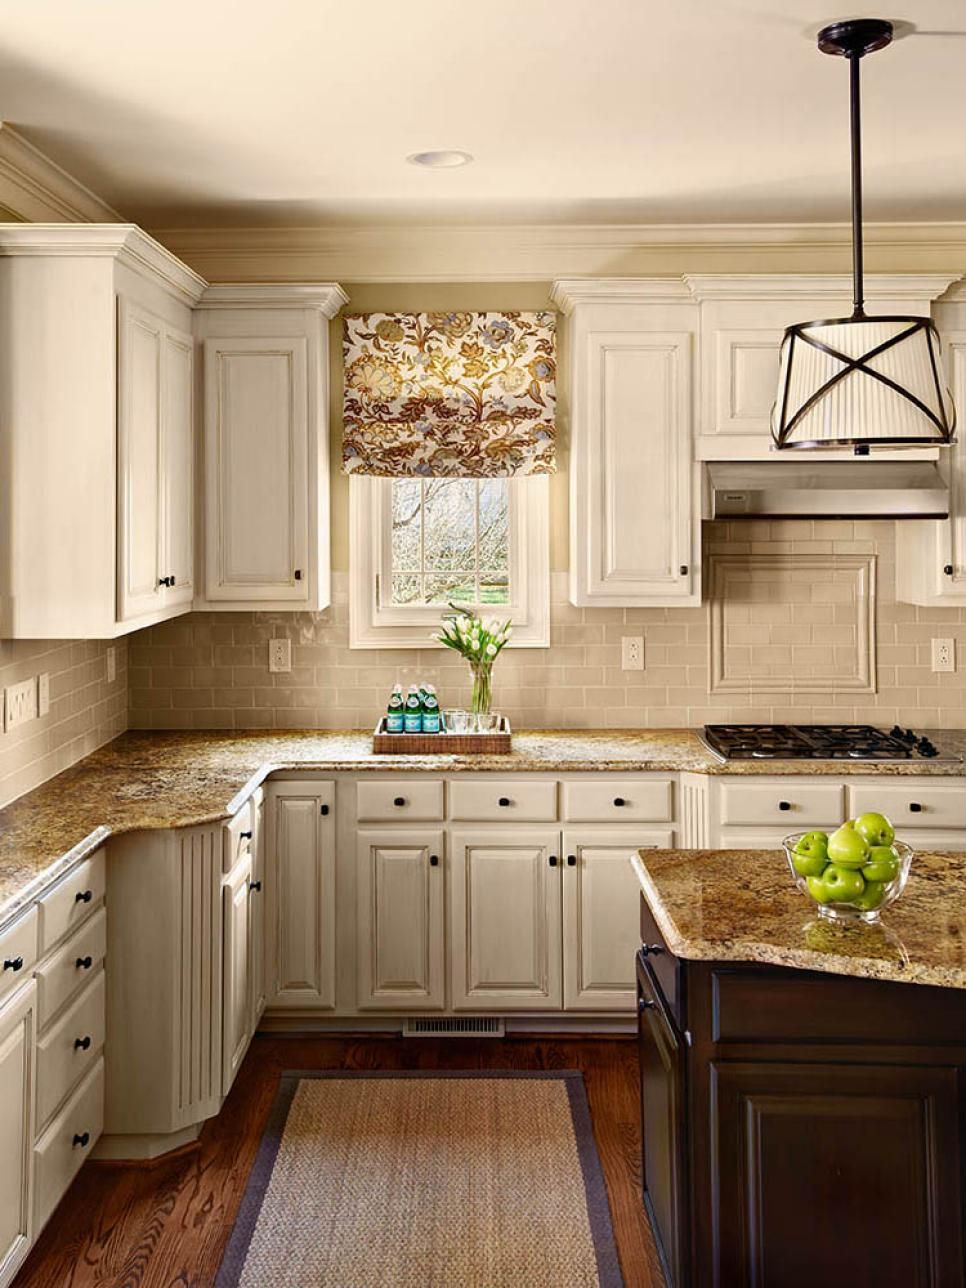 Good Browse Pictures Of Gorgeous Kitchens For Cabinet Ideas From HGTV.com